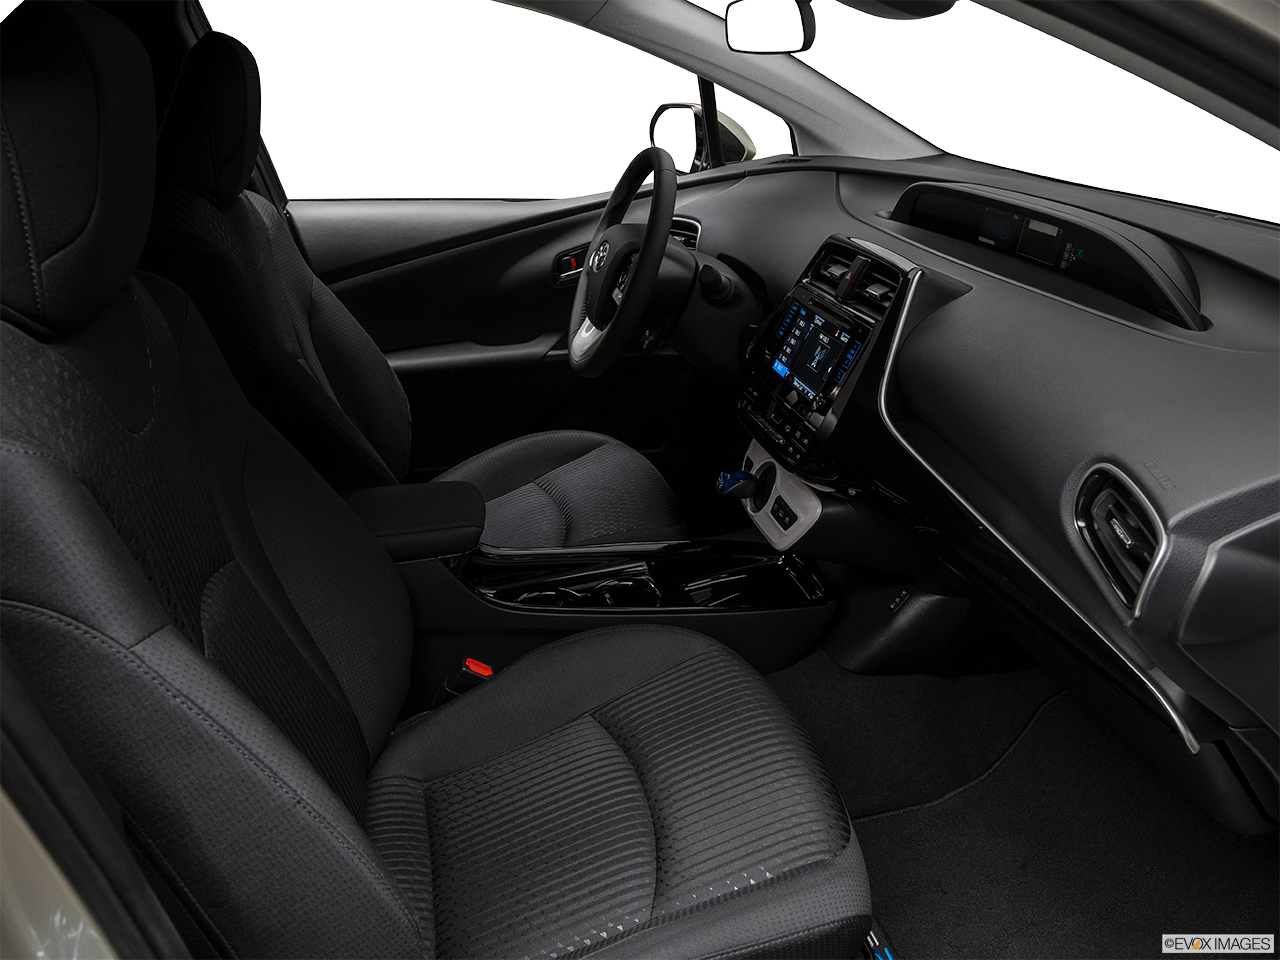 Interior view of the Toyota Prius Prime